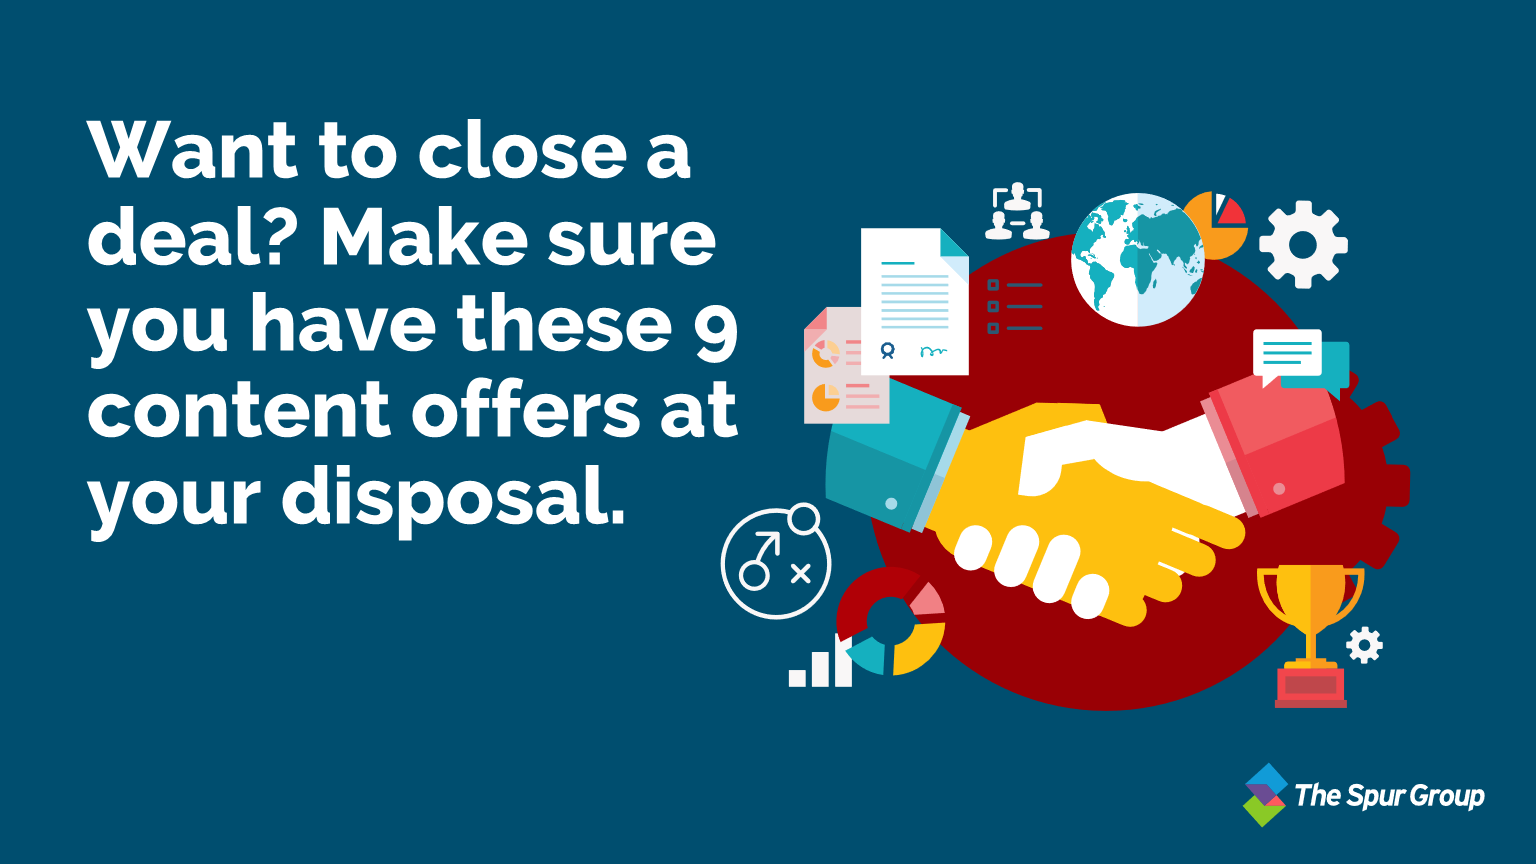 9 content offers that help you close the deal Featured Image